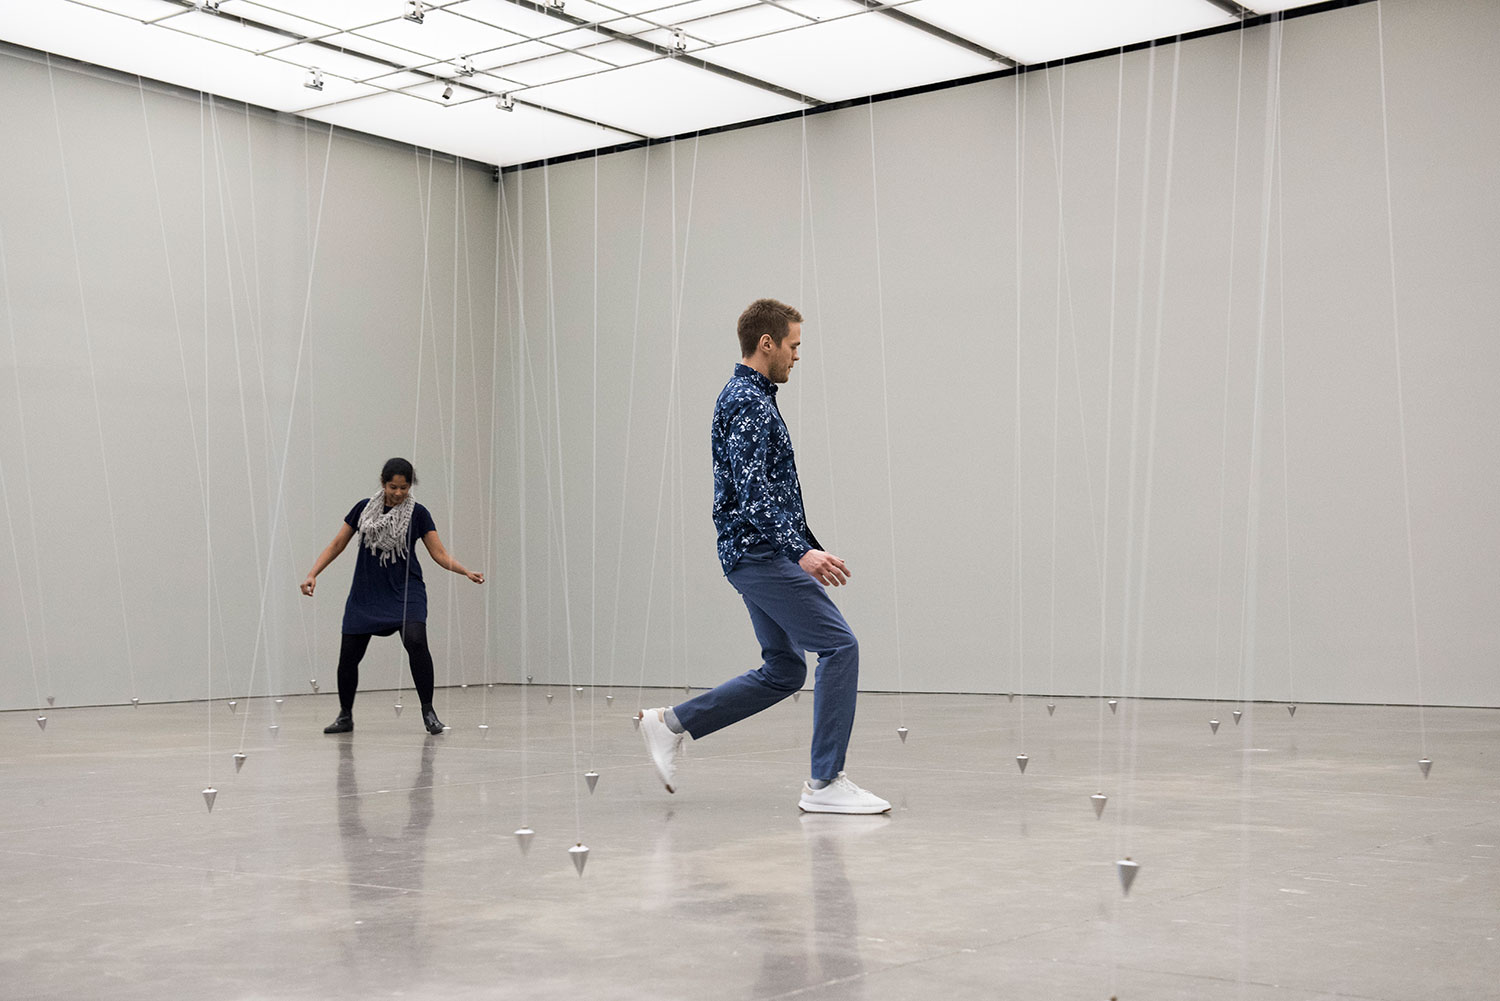 William Forsythe, Nowhere and Everywhere at the Same Time, No. 3, 2015. Courtesy of Museum Für Moderne Kunst Frankfurt Am Main, Germany; the artist; and Gagosian, NewYork. Photography by Liza Voll © William Forsythe